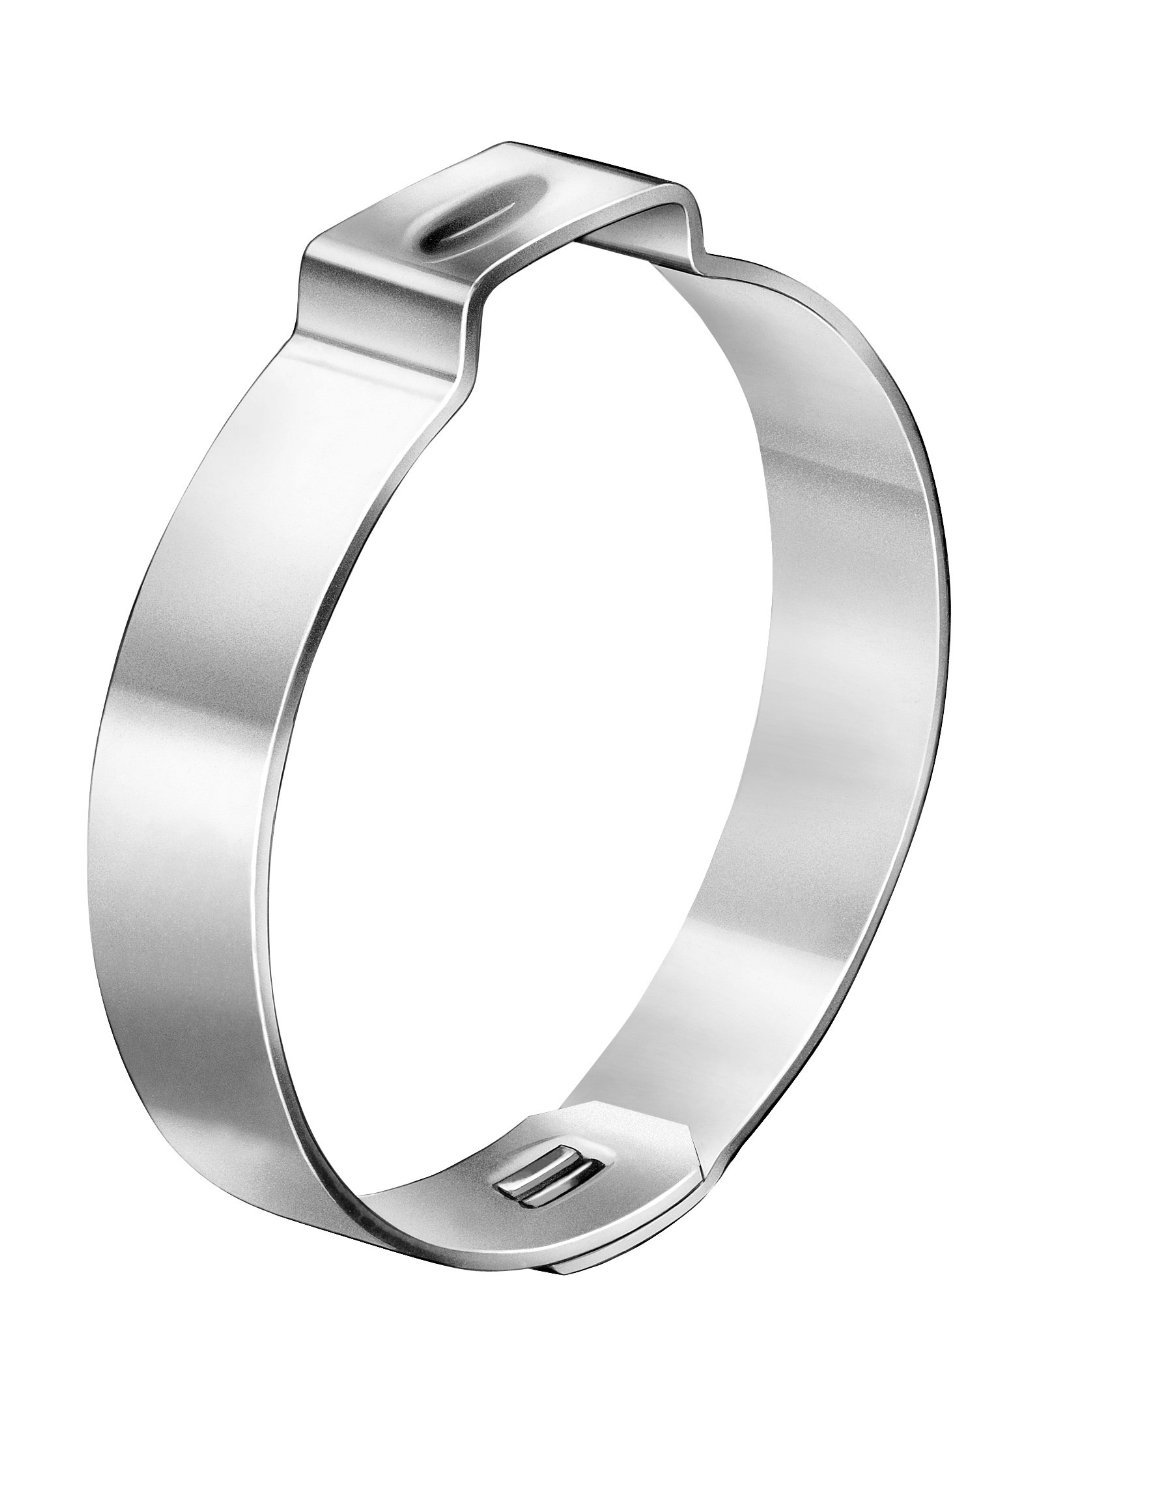 Oetiker 10500353 Zinc-Plated Steel Hose Clamp with Mechanical Interlock, One Ear, 7 mm Band Width, Clamp ID Range 52.9 mm (Closed) - 56.0 mm (Open) (Pack of 150)